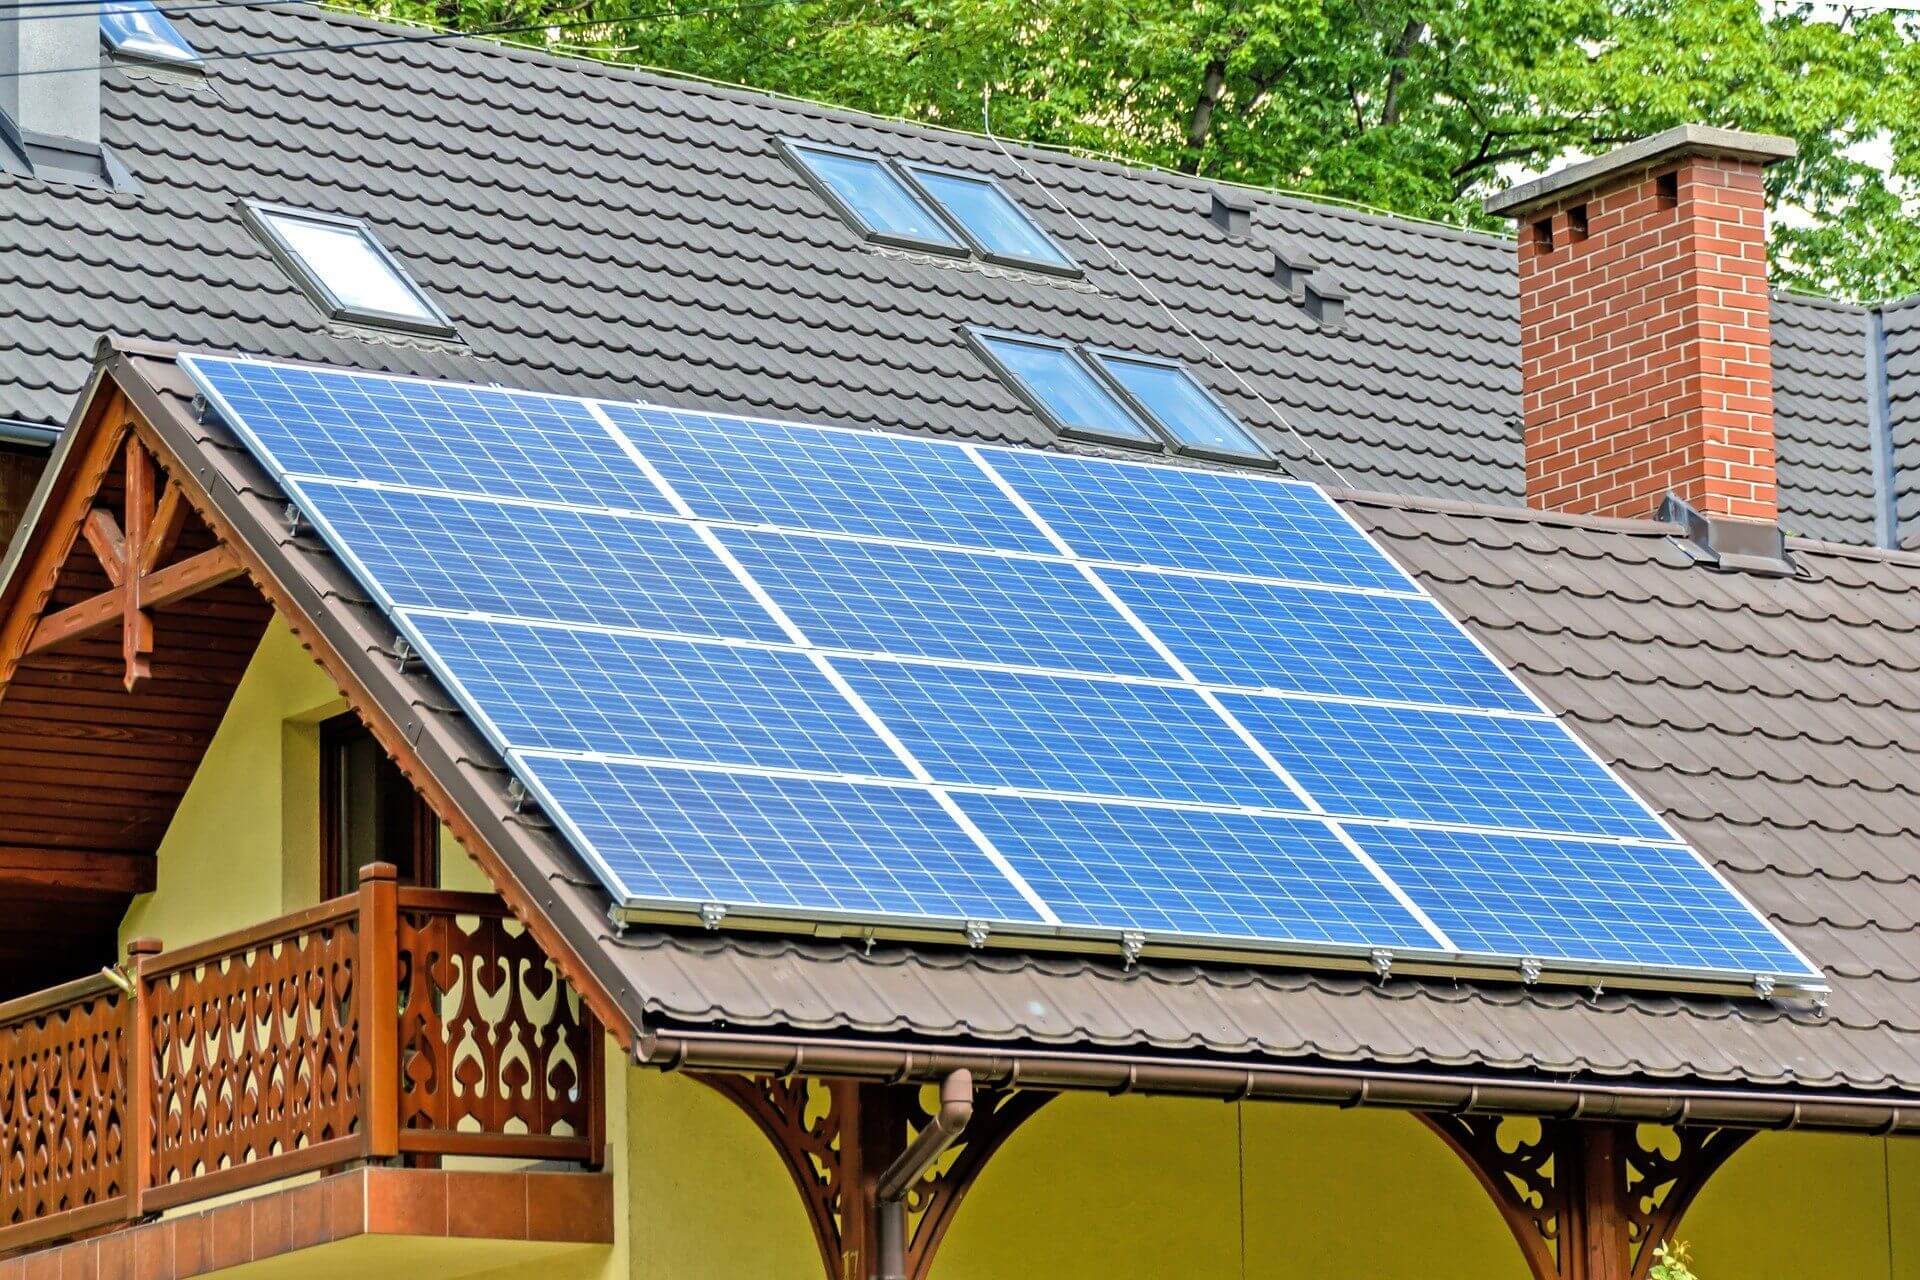 What Is The Purpose Of Using Solar Energy?